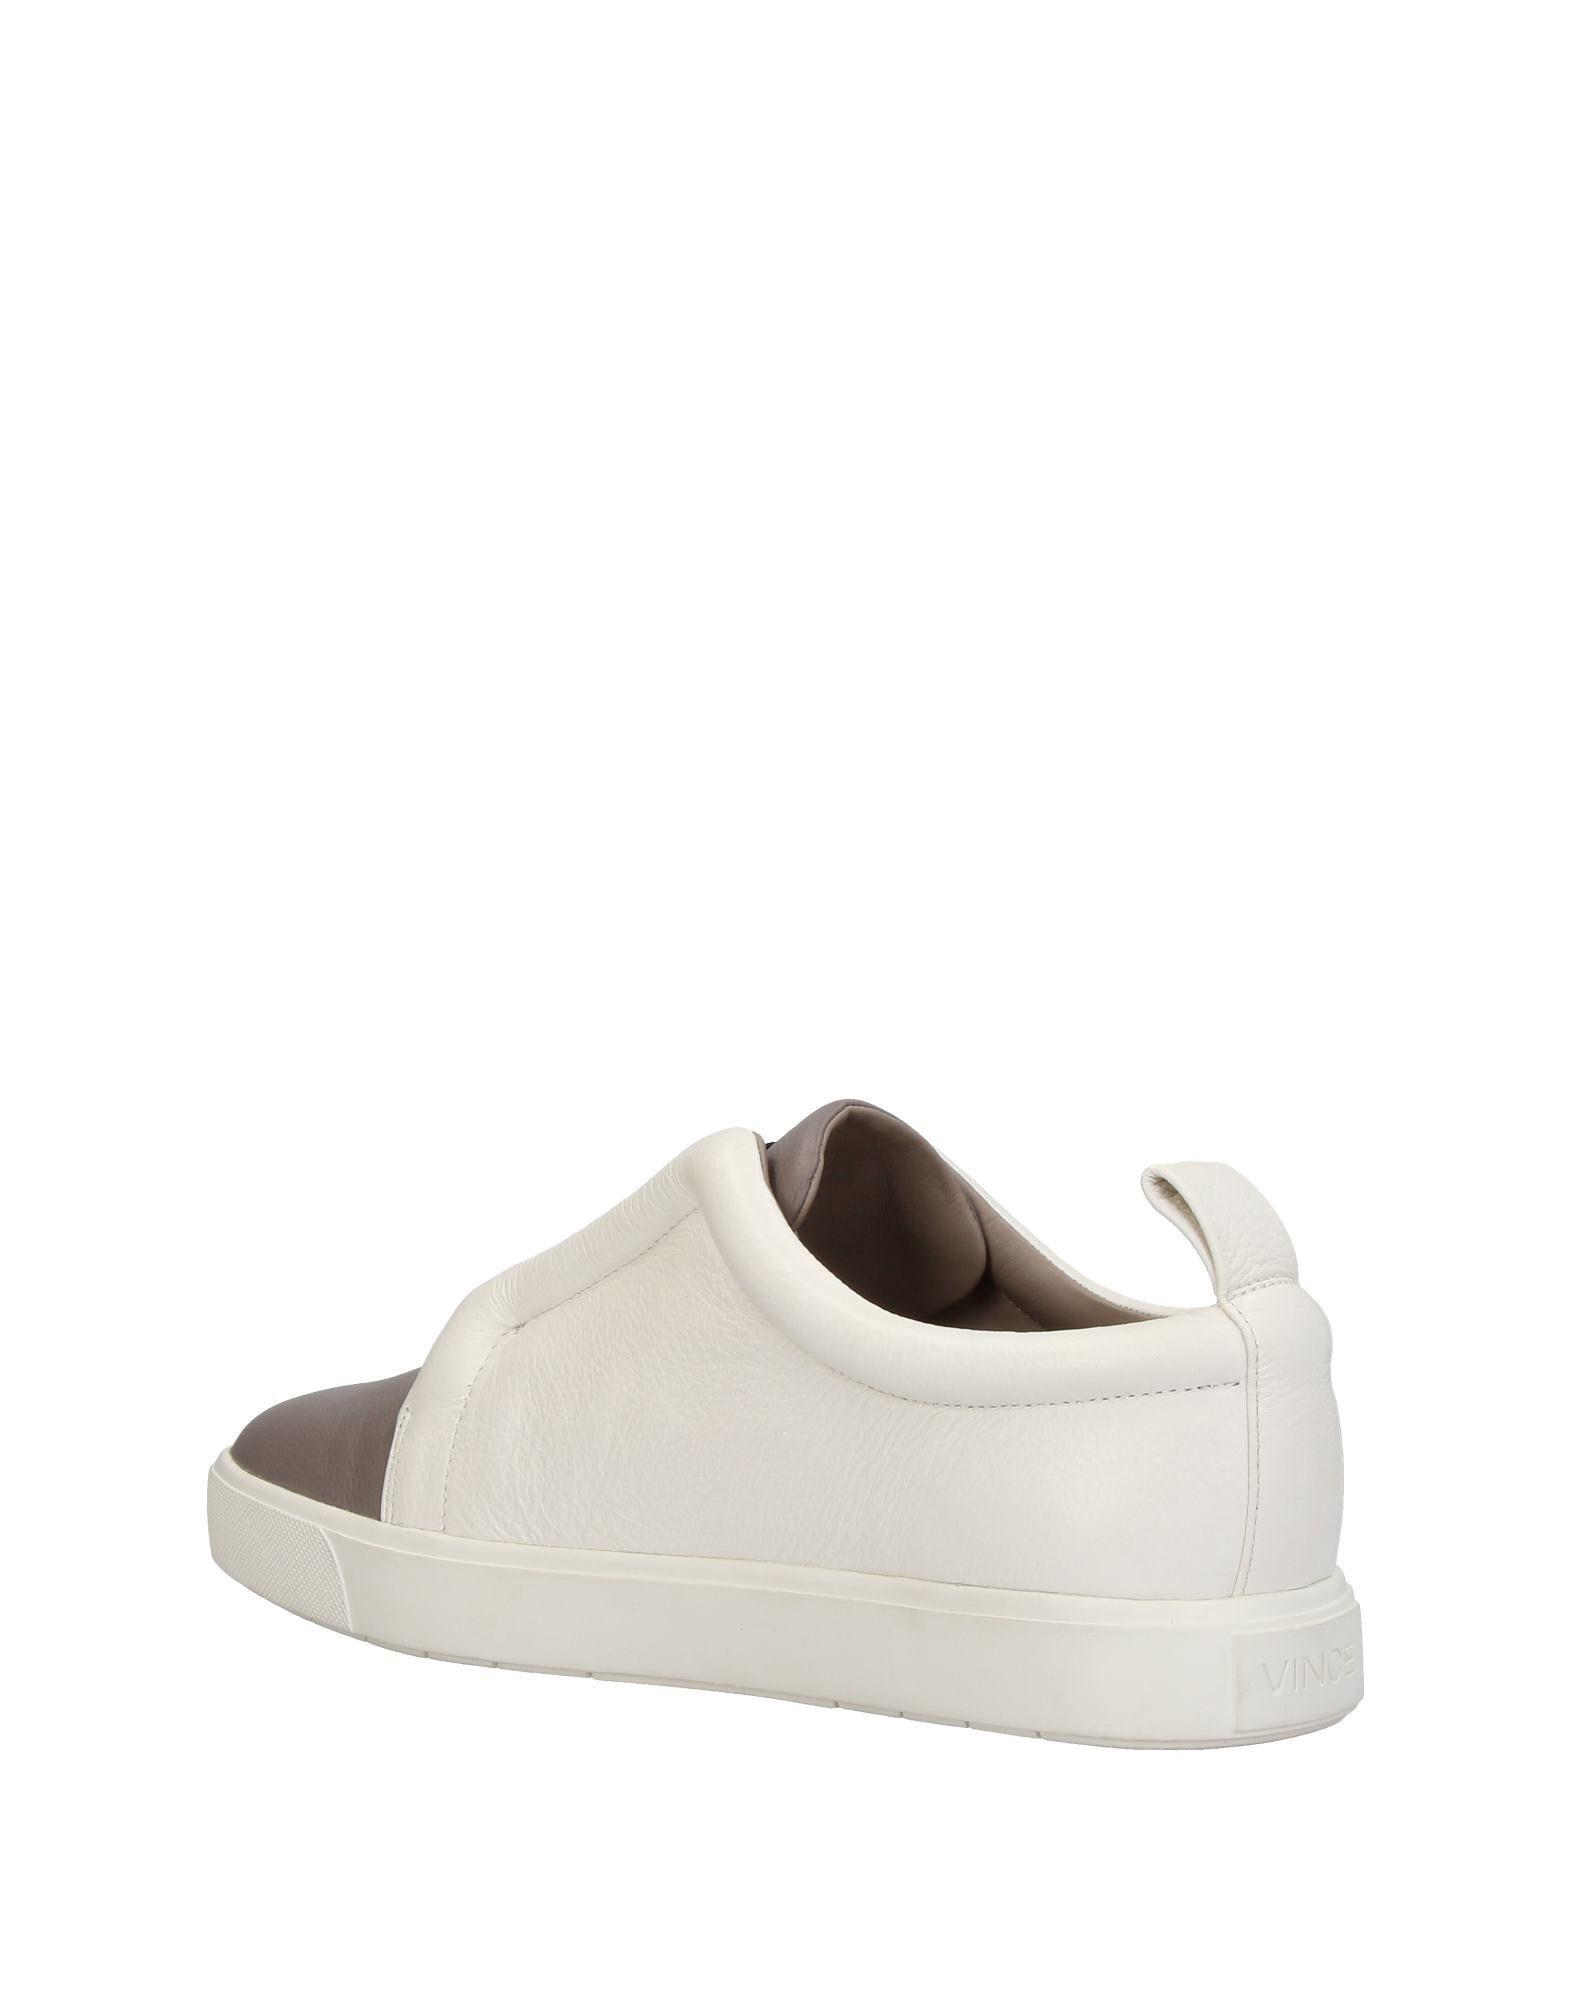 Vince Leather Low-tops & Sneakers in White